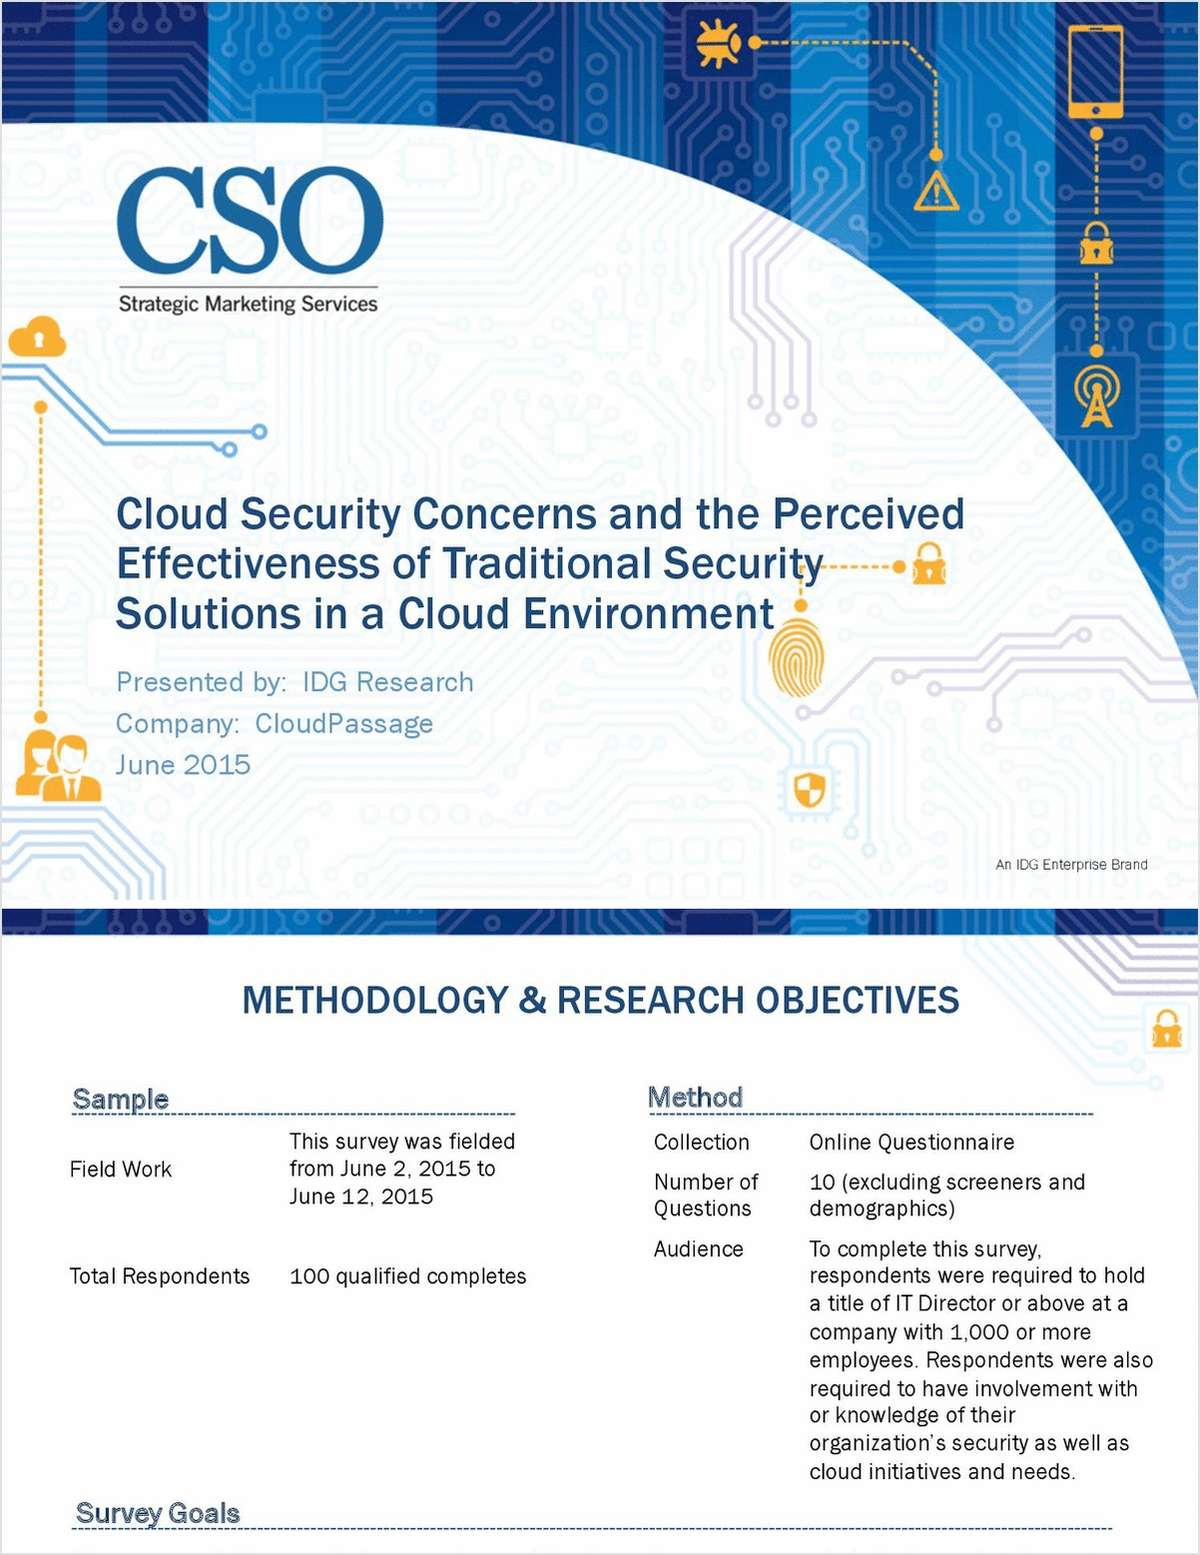 Cloud Security Concerns and the Perceived Effectiveness of Traditional Security Solutions in a Cloud Environment